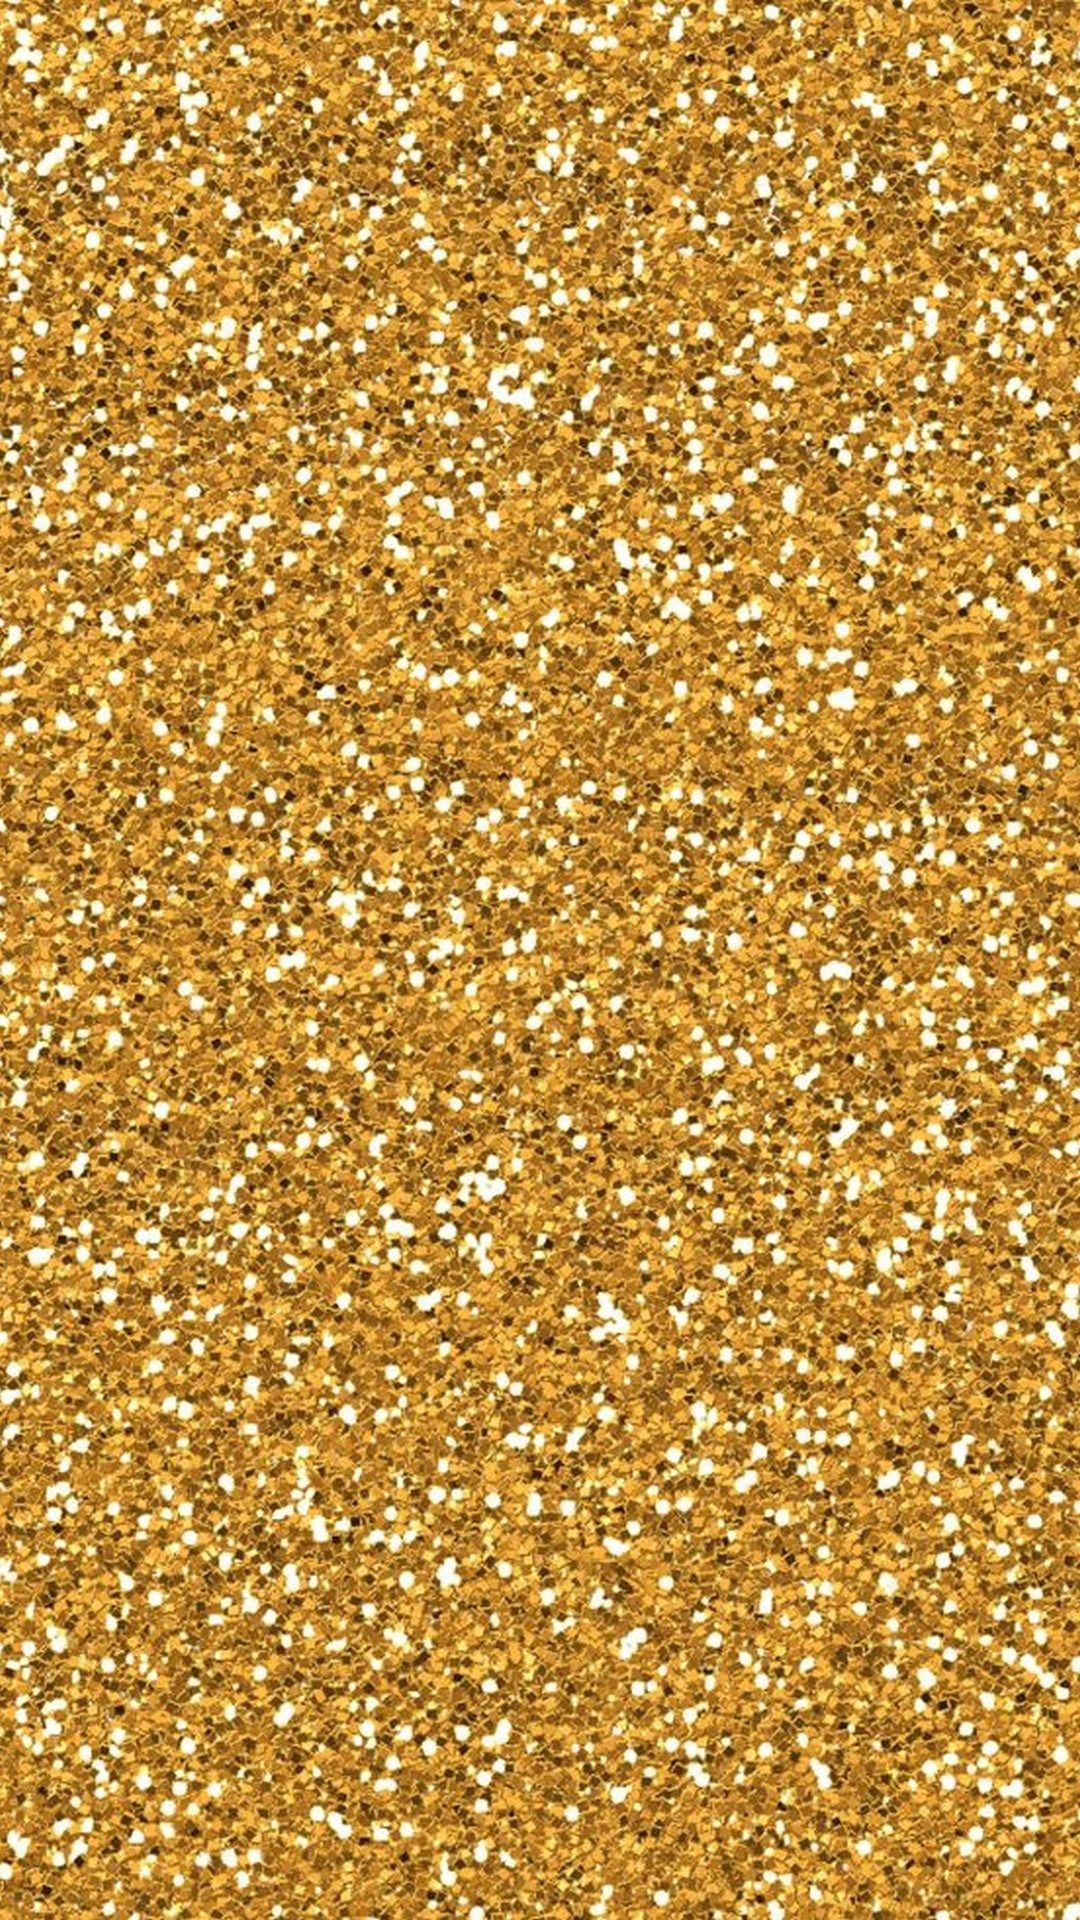 Ombre Glitter Wallpapers Iphone Hupages Download Iphone Wallpapers Iphone Wallpaper Glitter Sparkle Wallpaper Gold Glitter Background